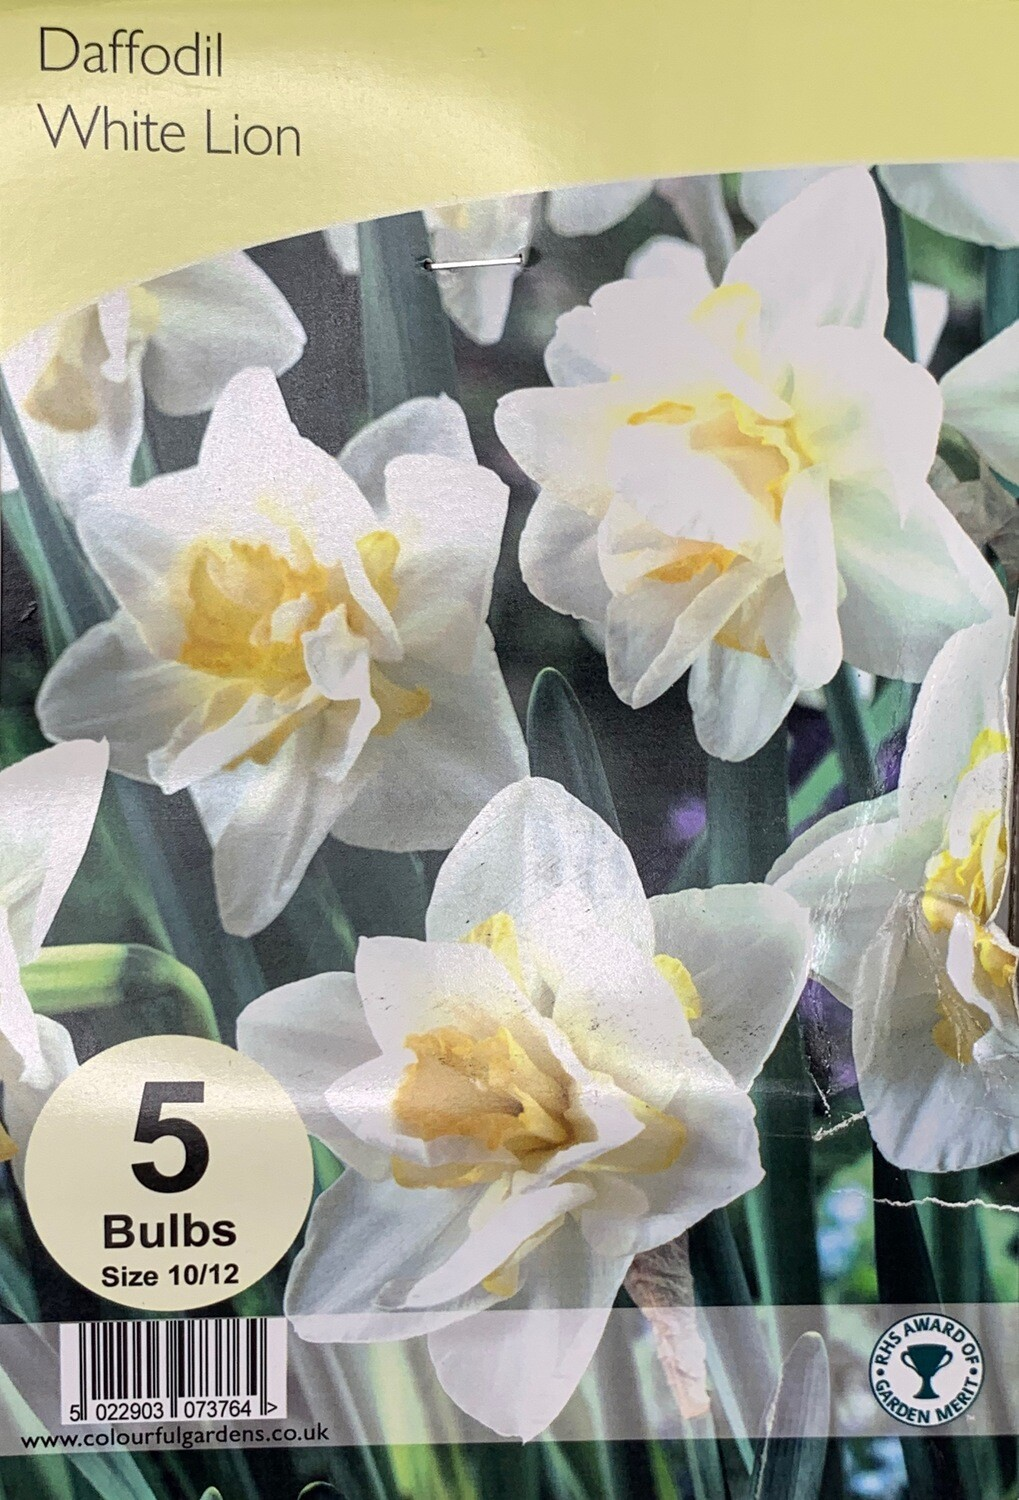 Daffodil White Lion Bulbs